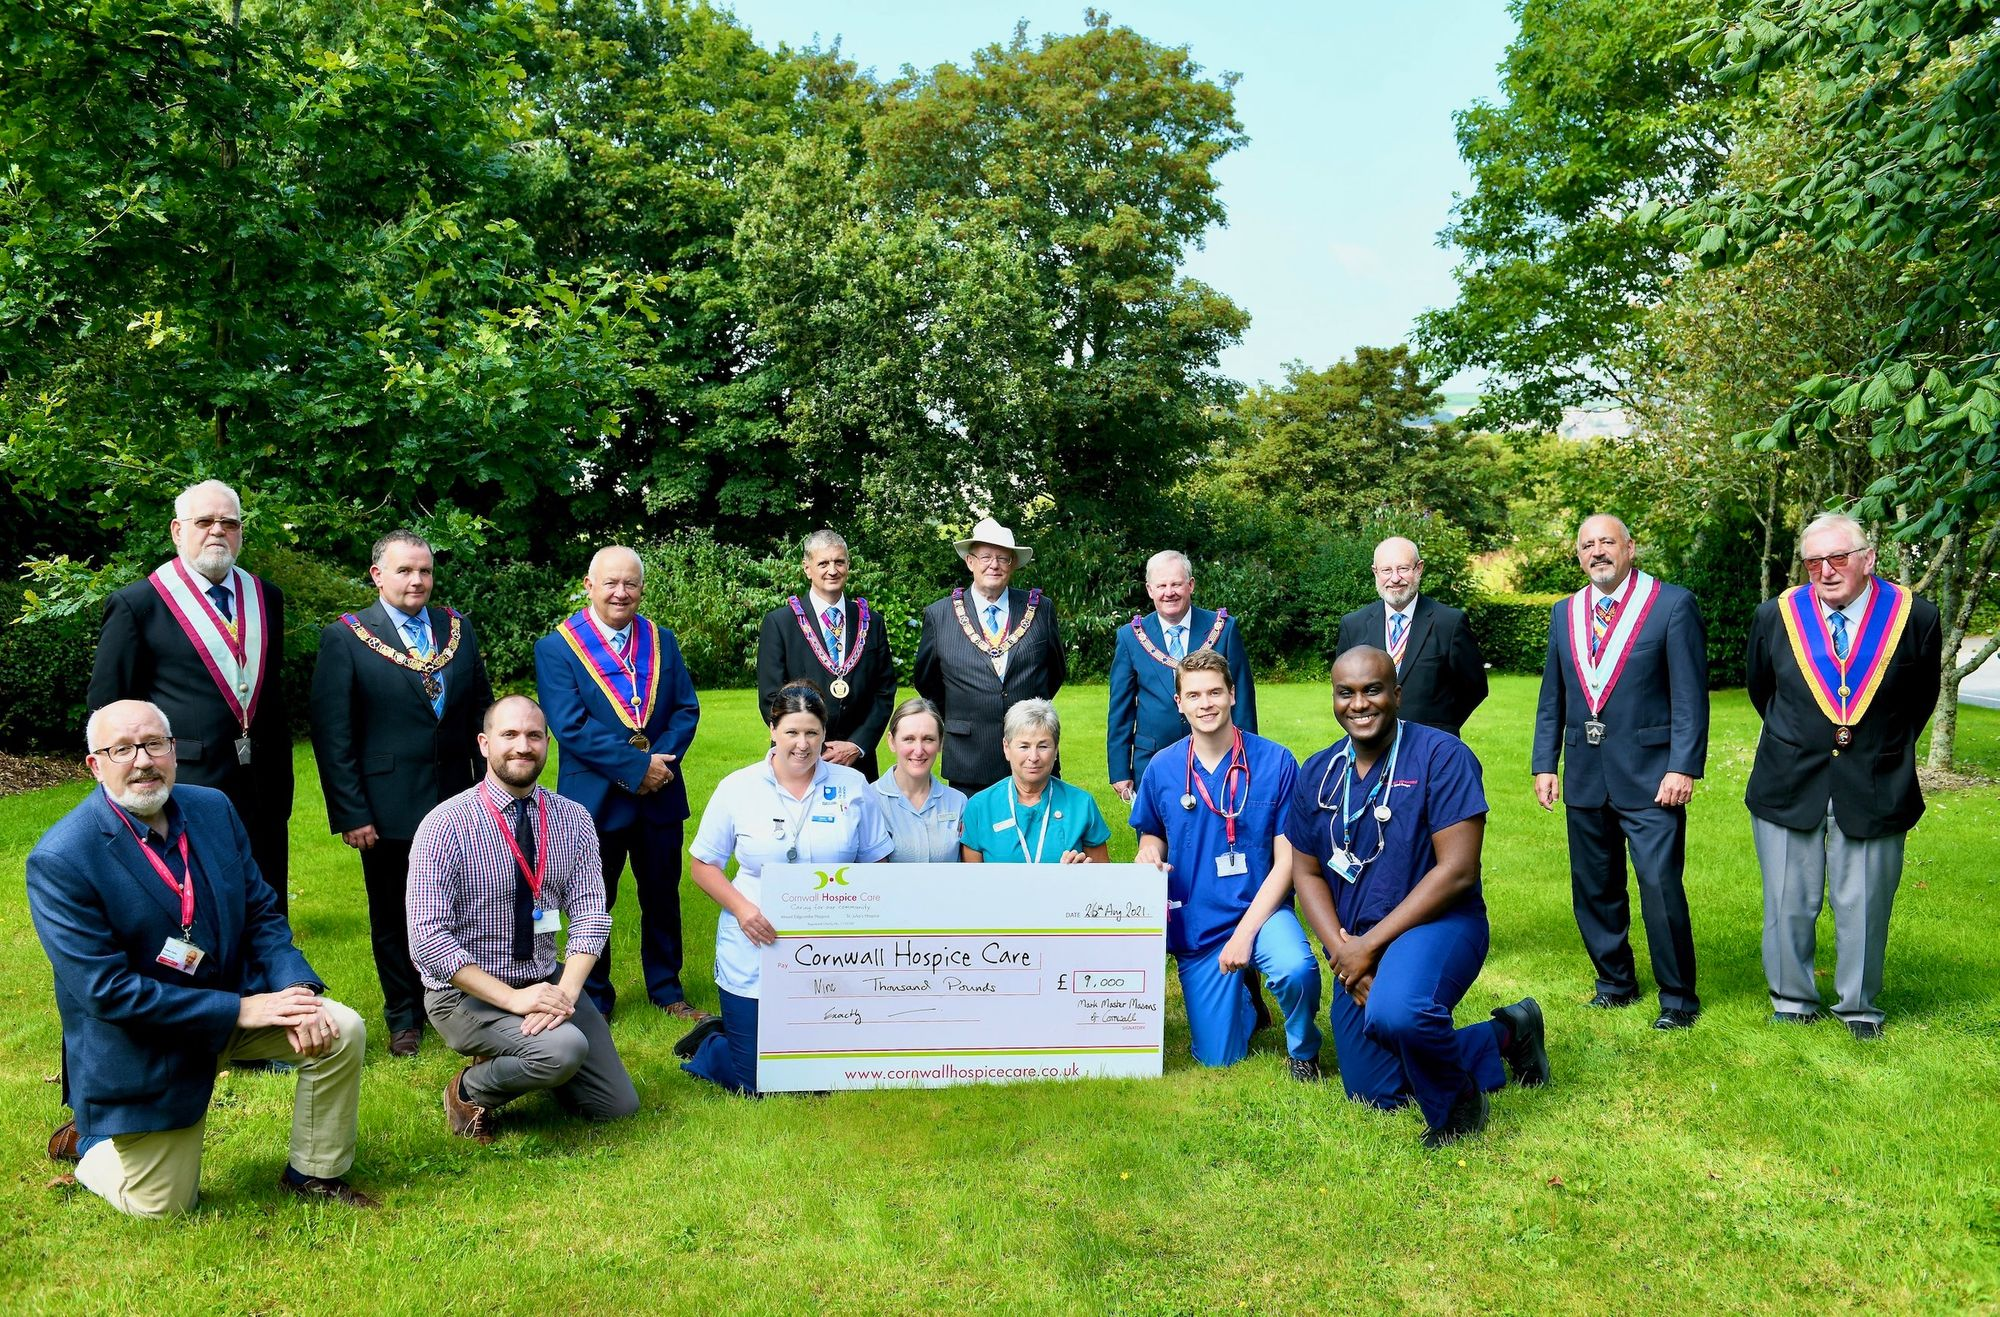 Cornwall/England - Freemasons raise £19,000 for hospices in St Austell and Hayle